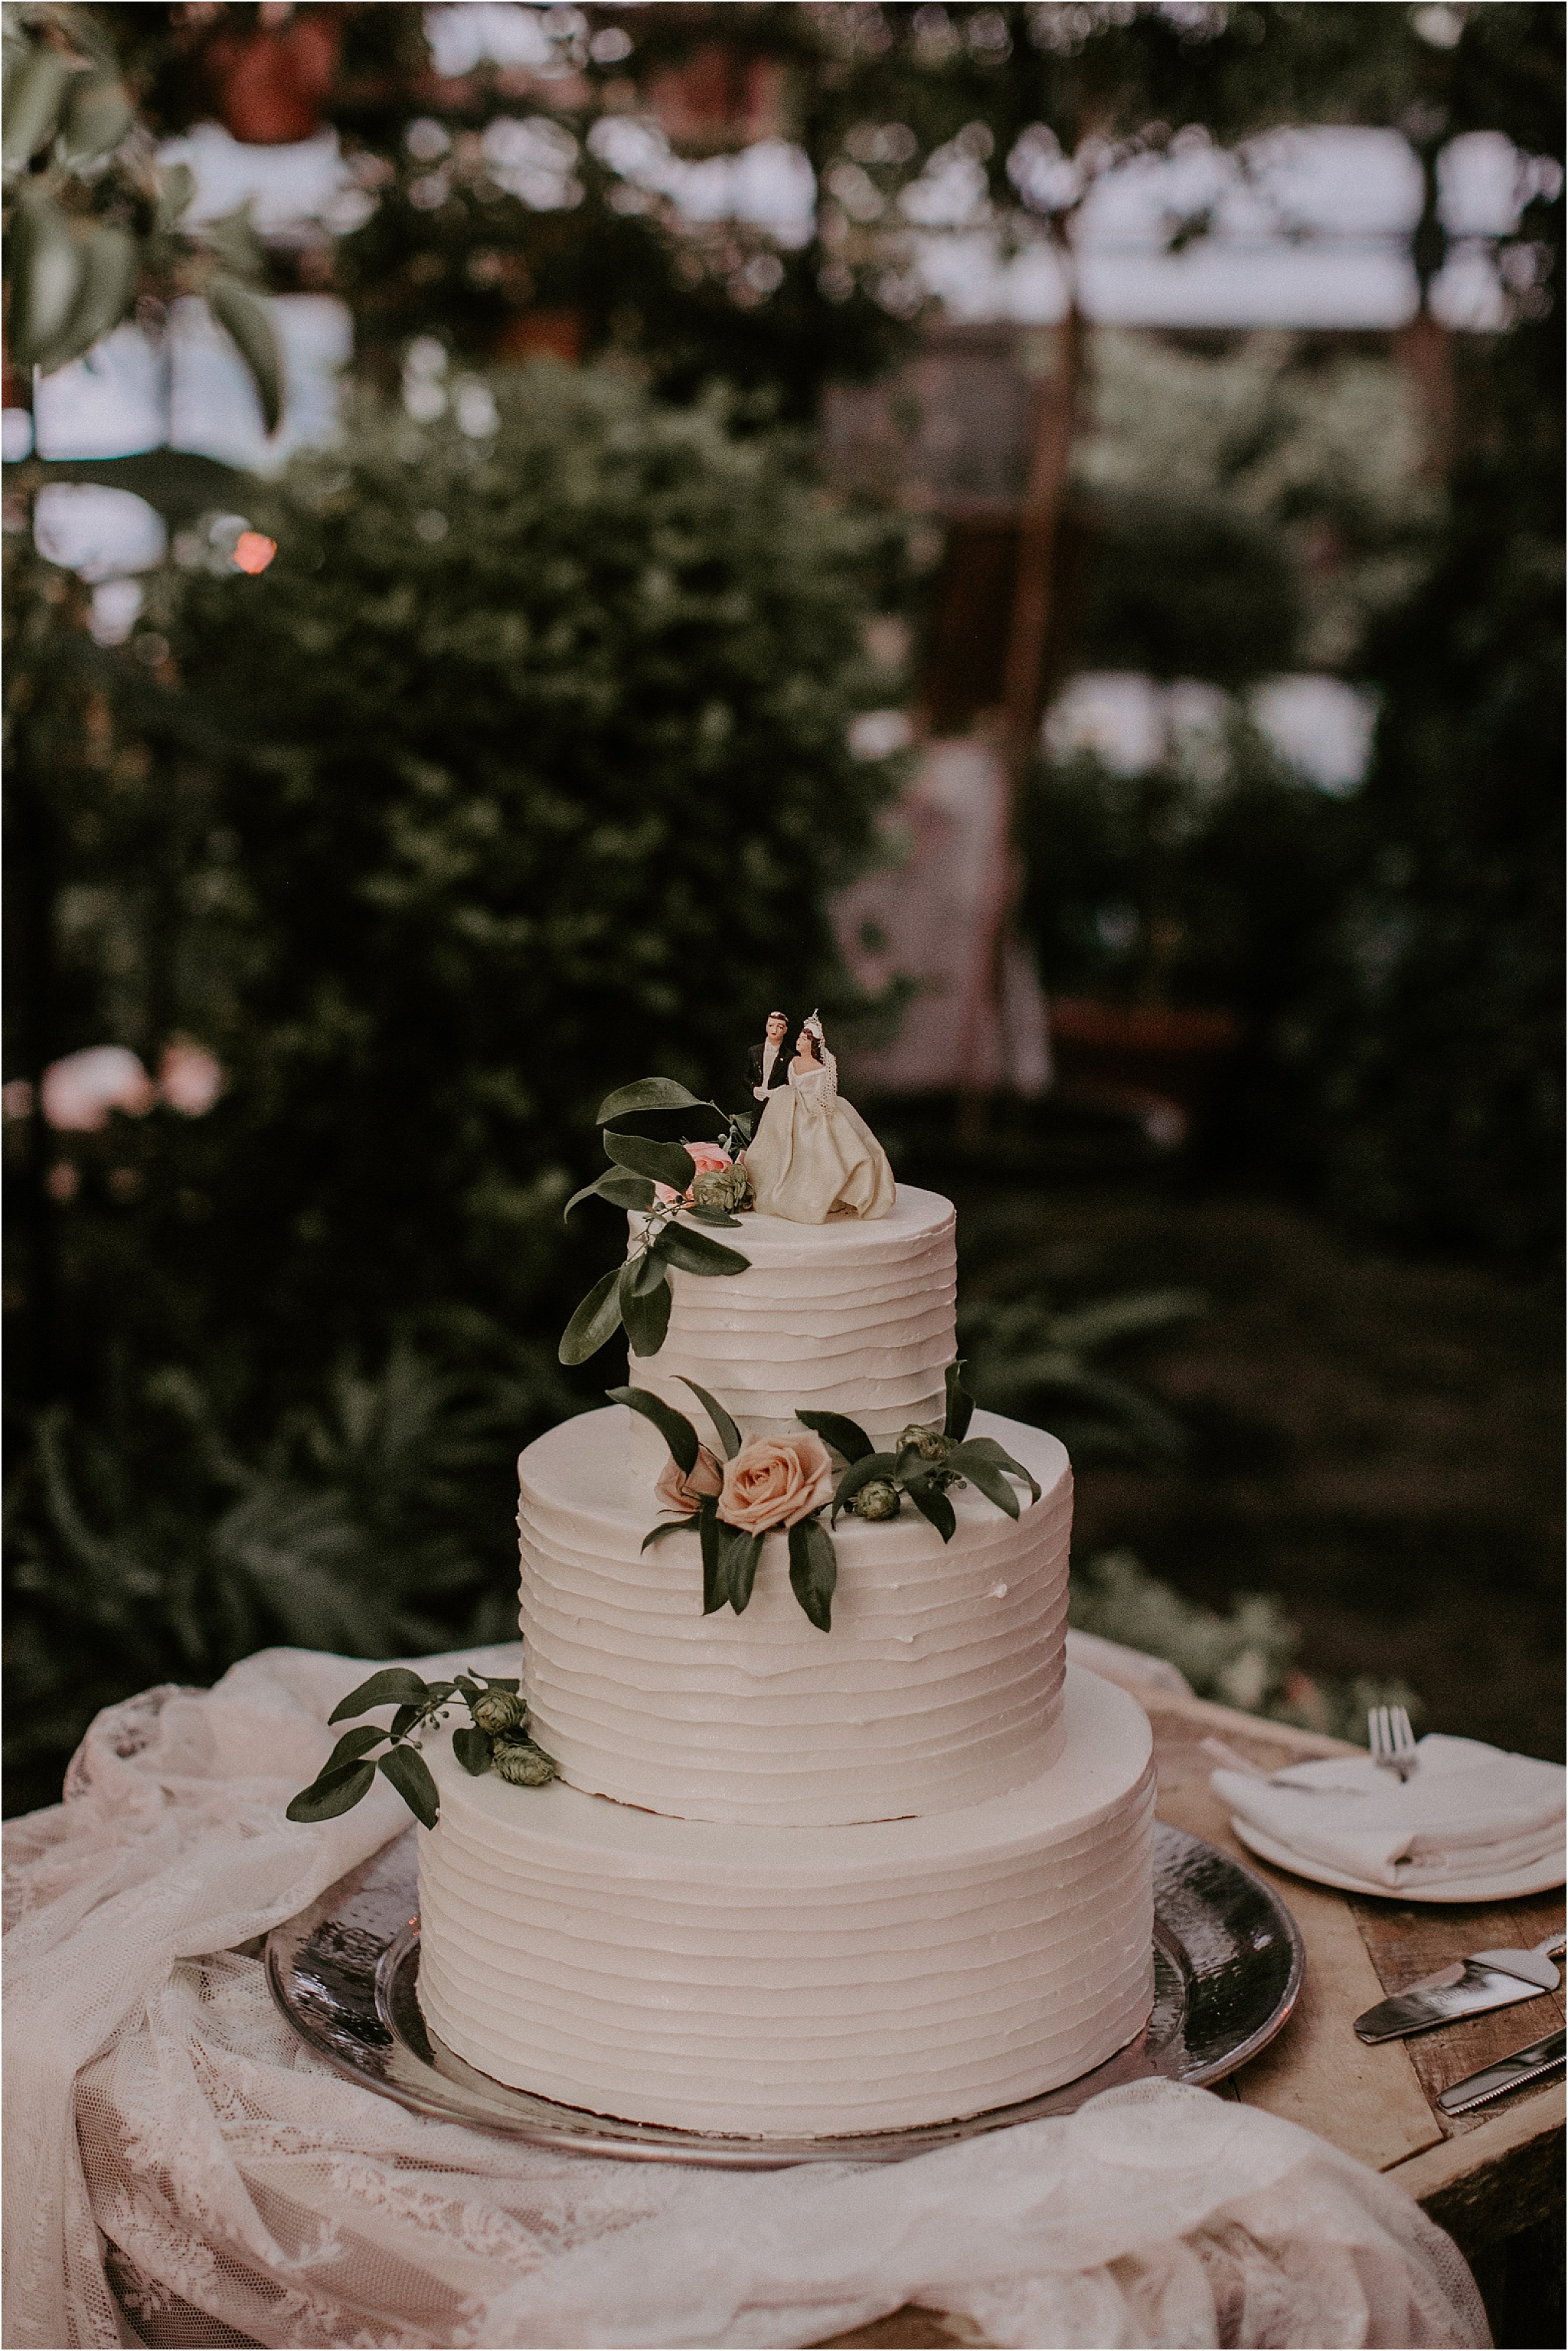 Sarah_Brookhart_Hortulus_Farm_Garden_and_Nursey_Wedding_Photographer_0077.jpg